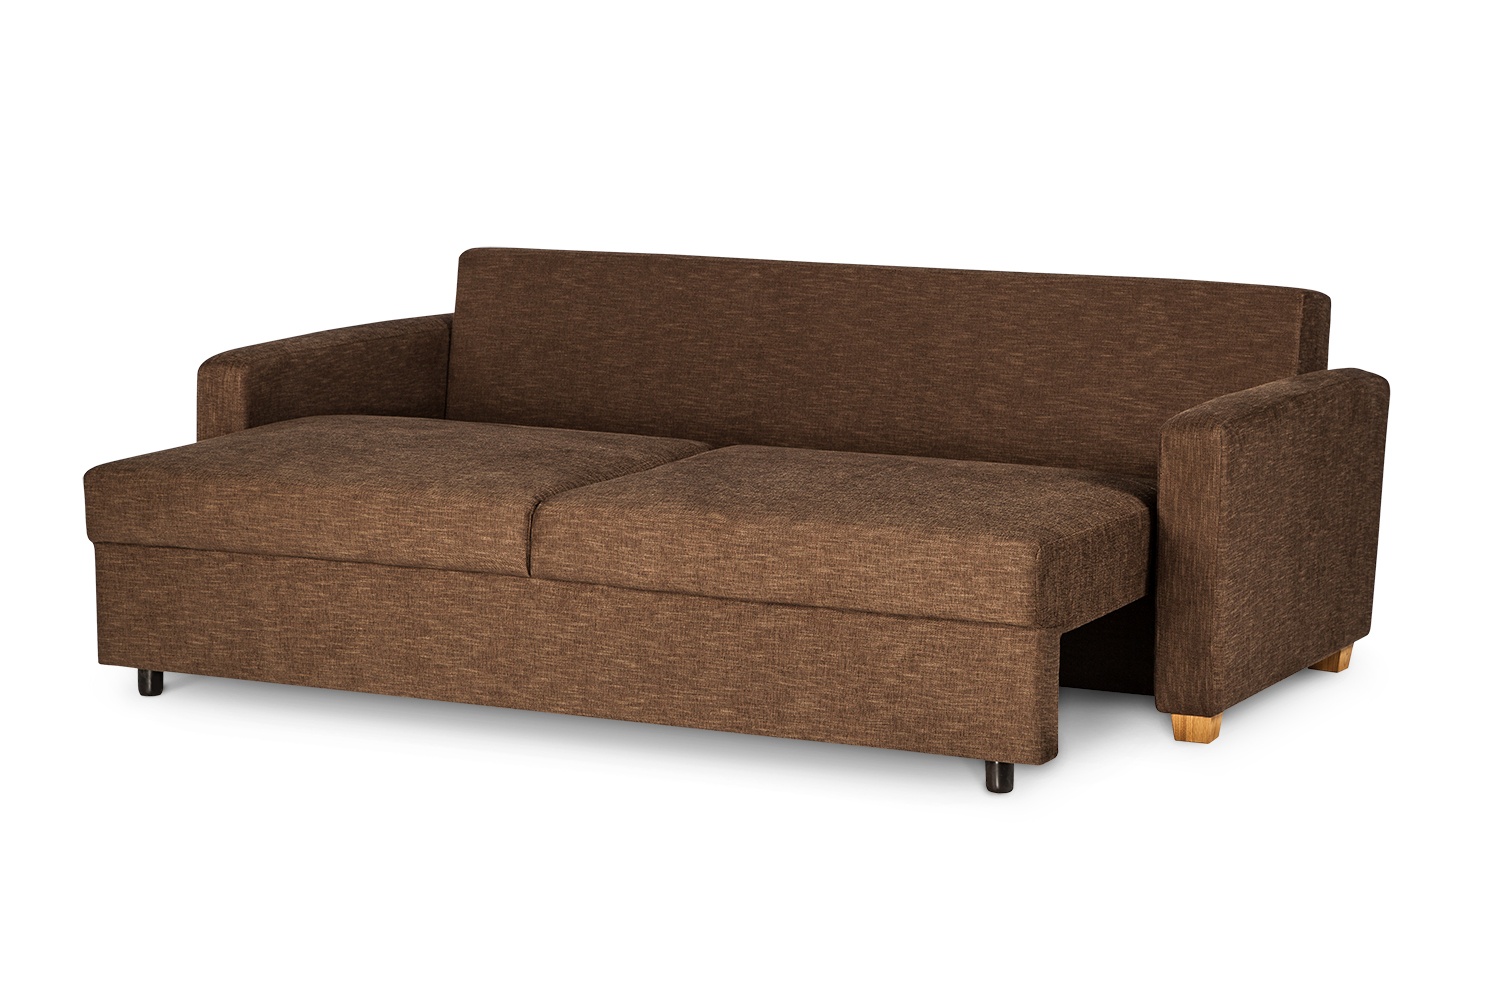 In picture Calibra 3 LC opened into the bed position. Fabric: Bronco 5201. Leg: 34, oak.